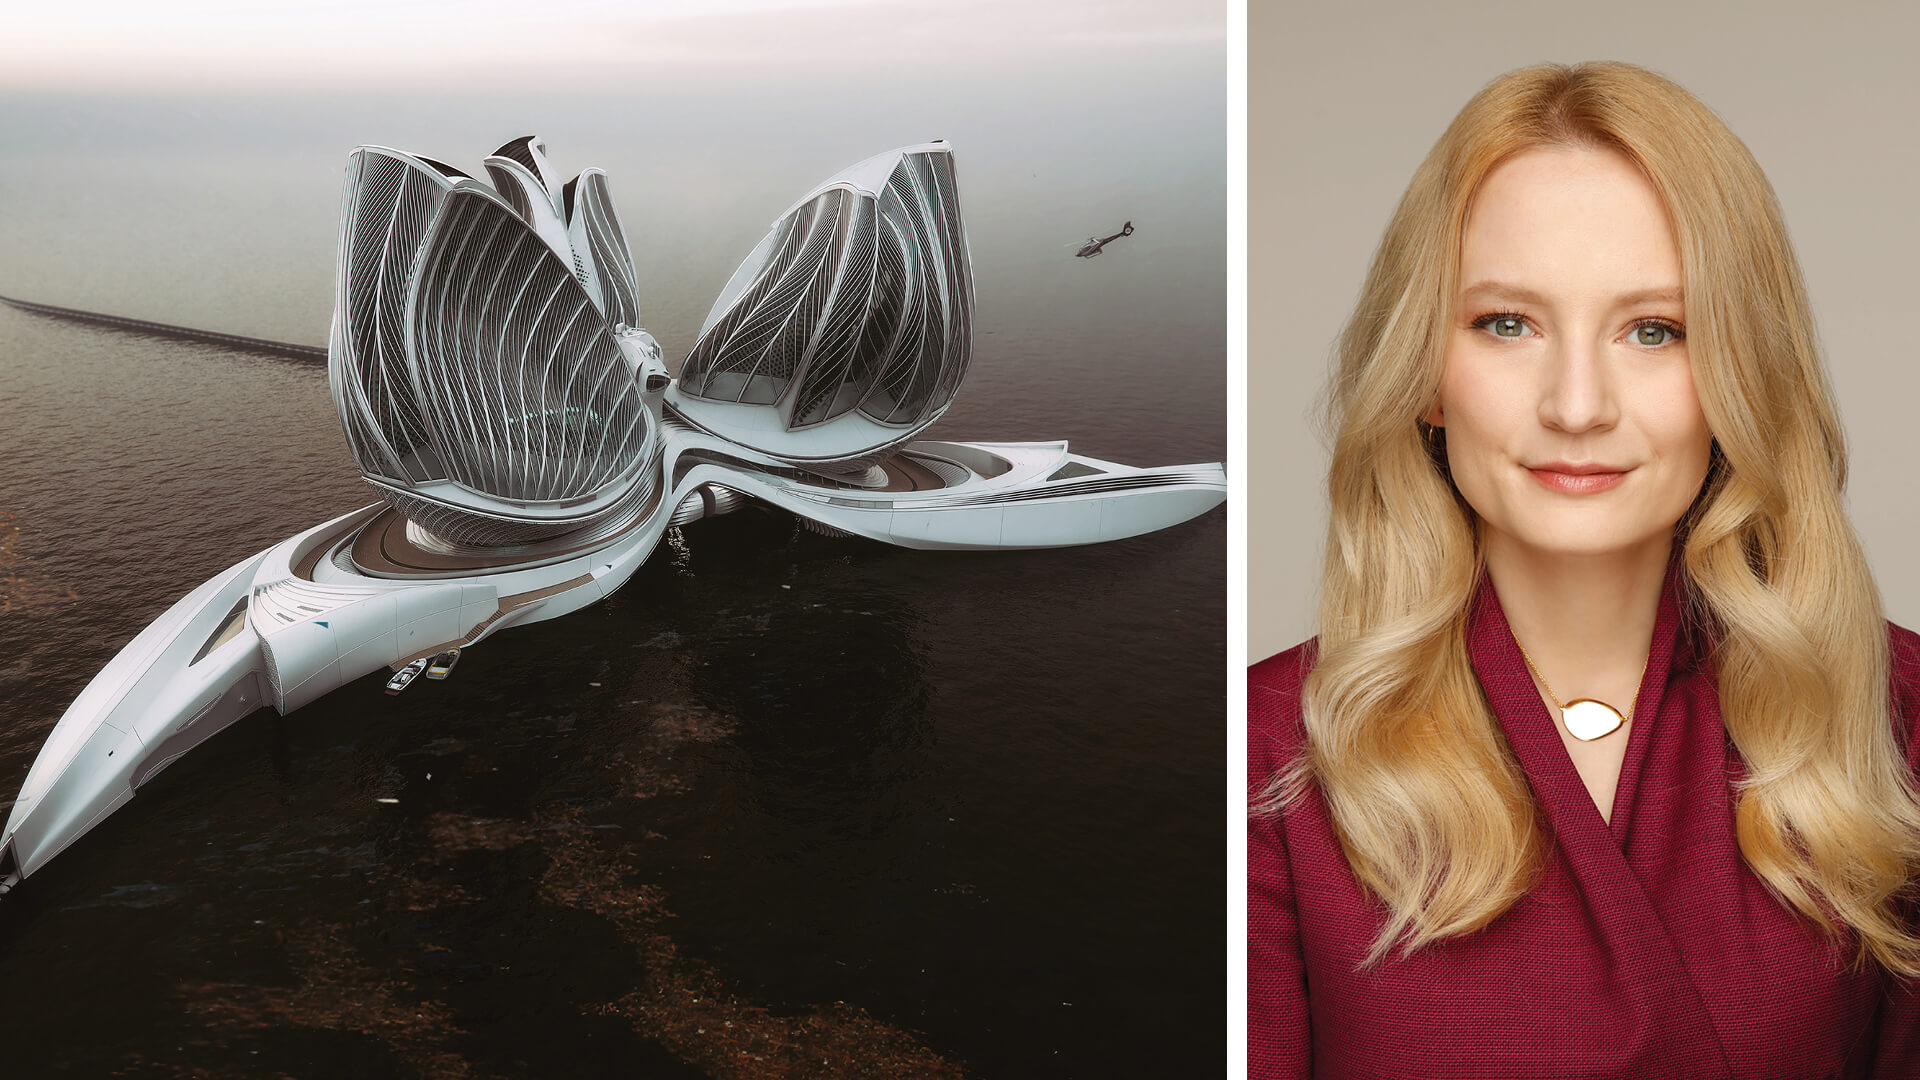 The floating centre prototype called '8rh Continent' is designed with three incredible glass forms emerging from an elegant spiral base | The 8th Continent by Lenka Petráková | STIRworld